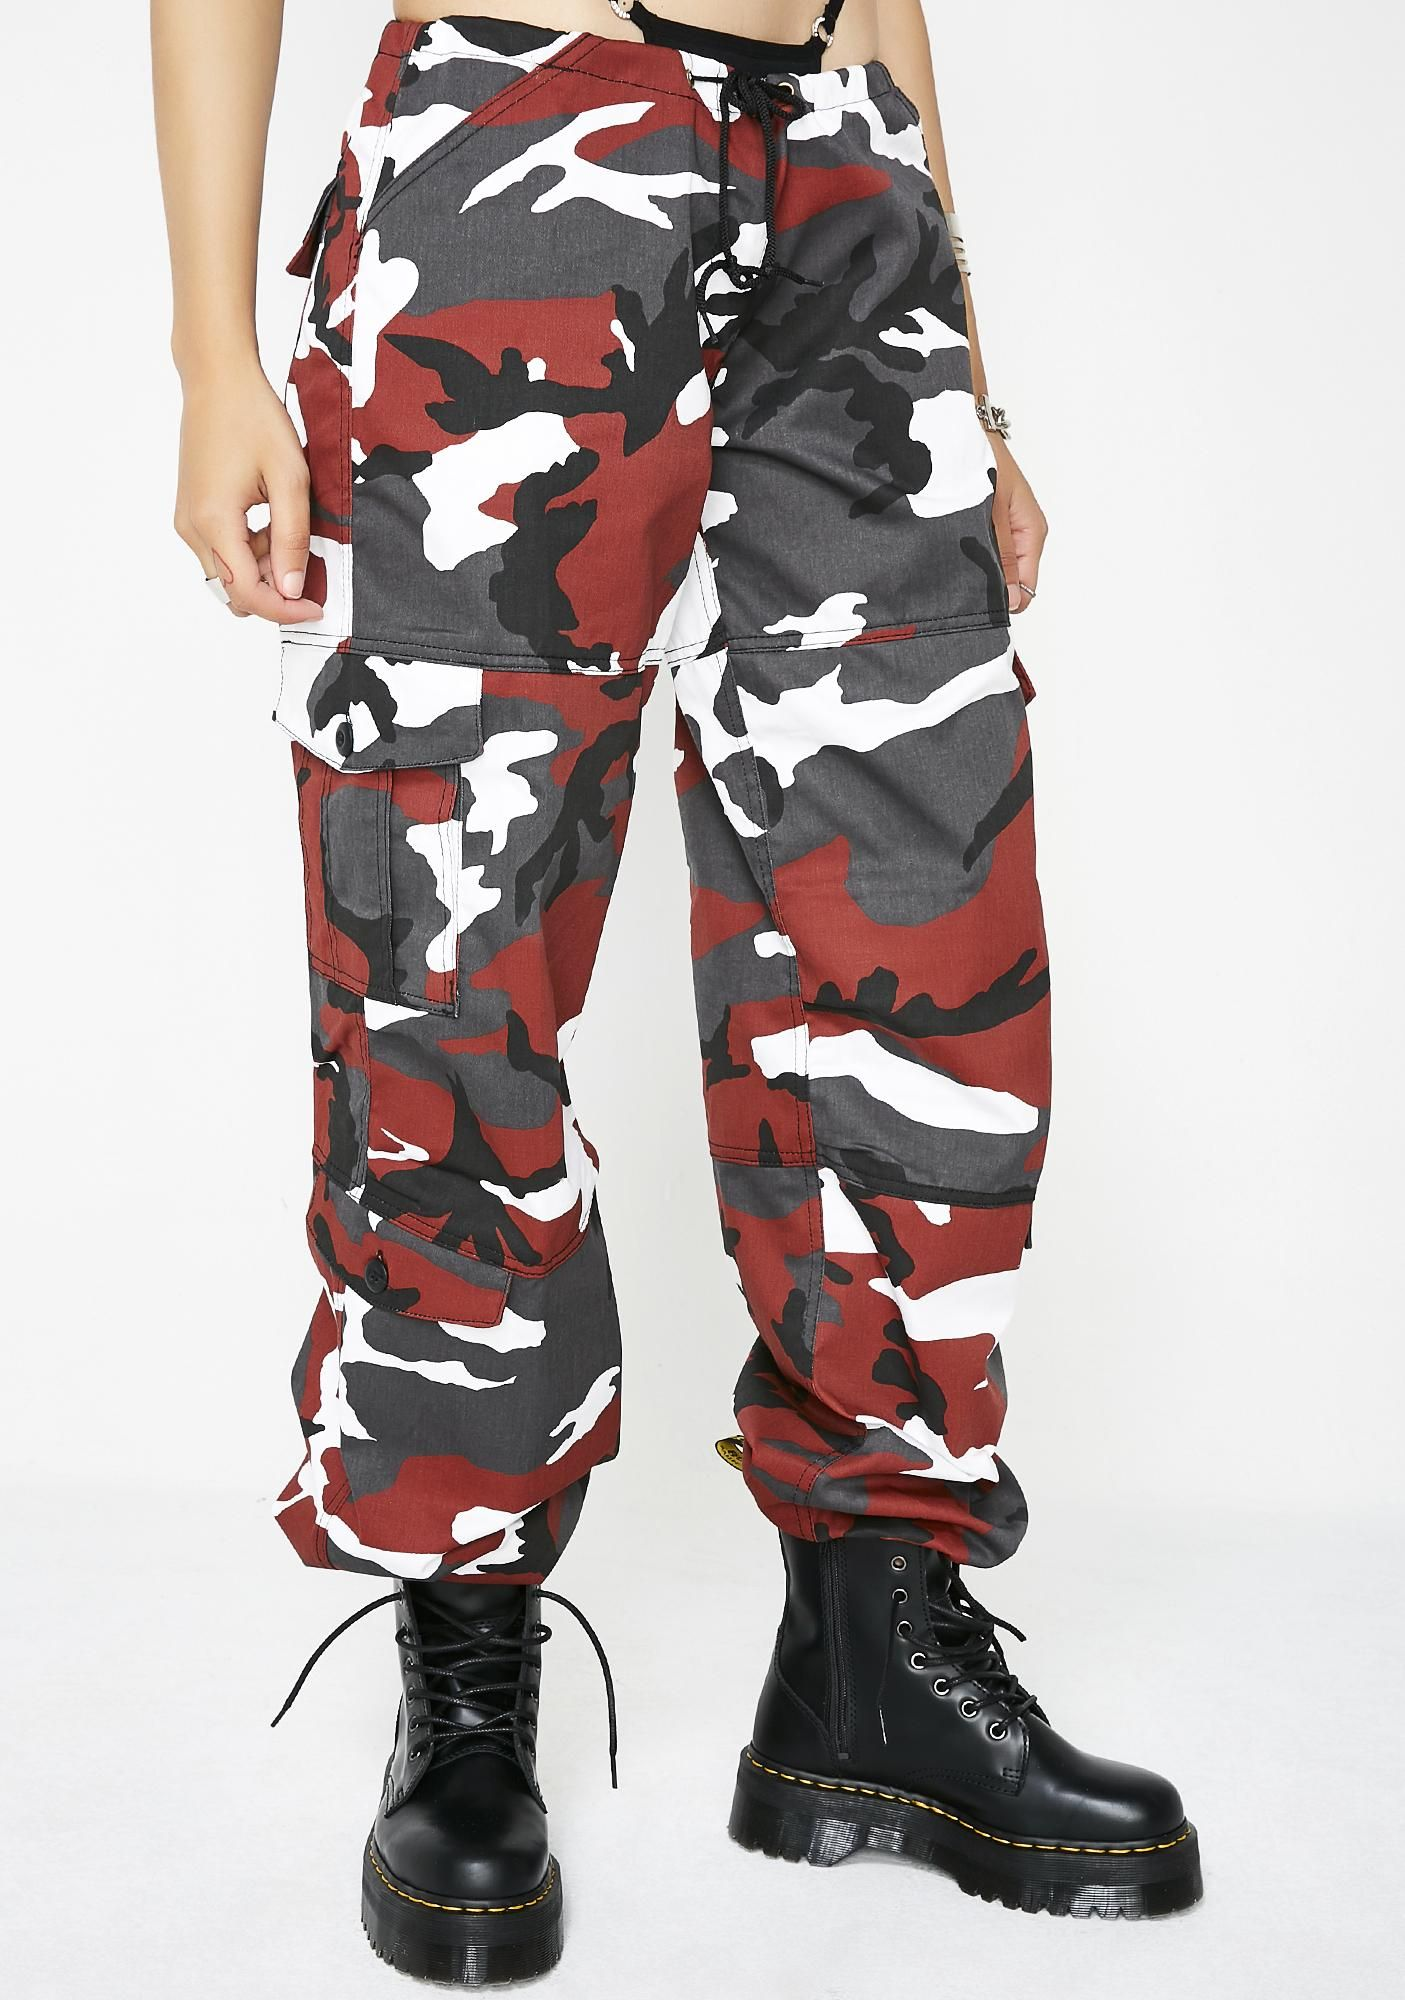 4099920f262b0 Rothco Lit Army Brat Cargo Pants at Dolls Kill, an online punk, goth, rave,  kawaii, and streetwear clothing store. FAST & FREE WORLDWIDE SHIPPING.